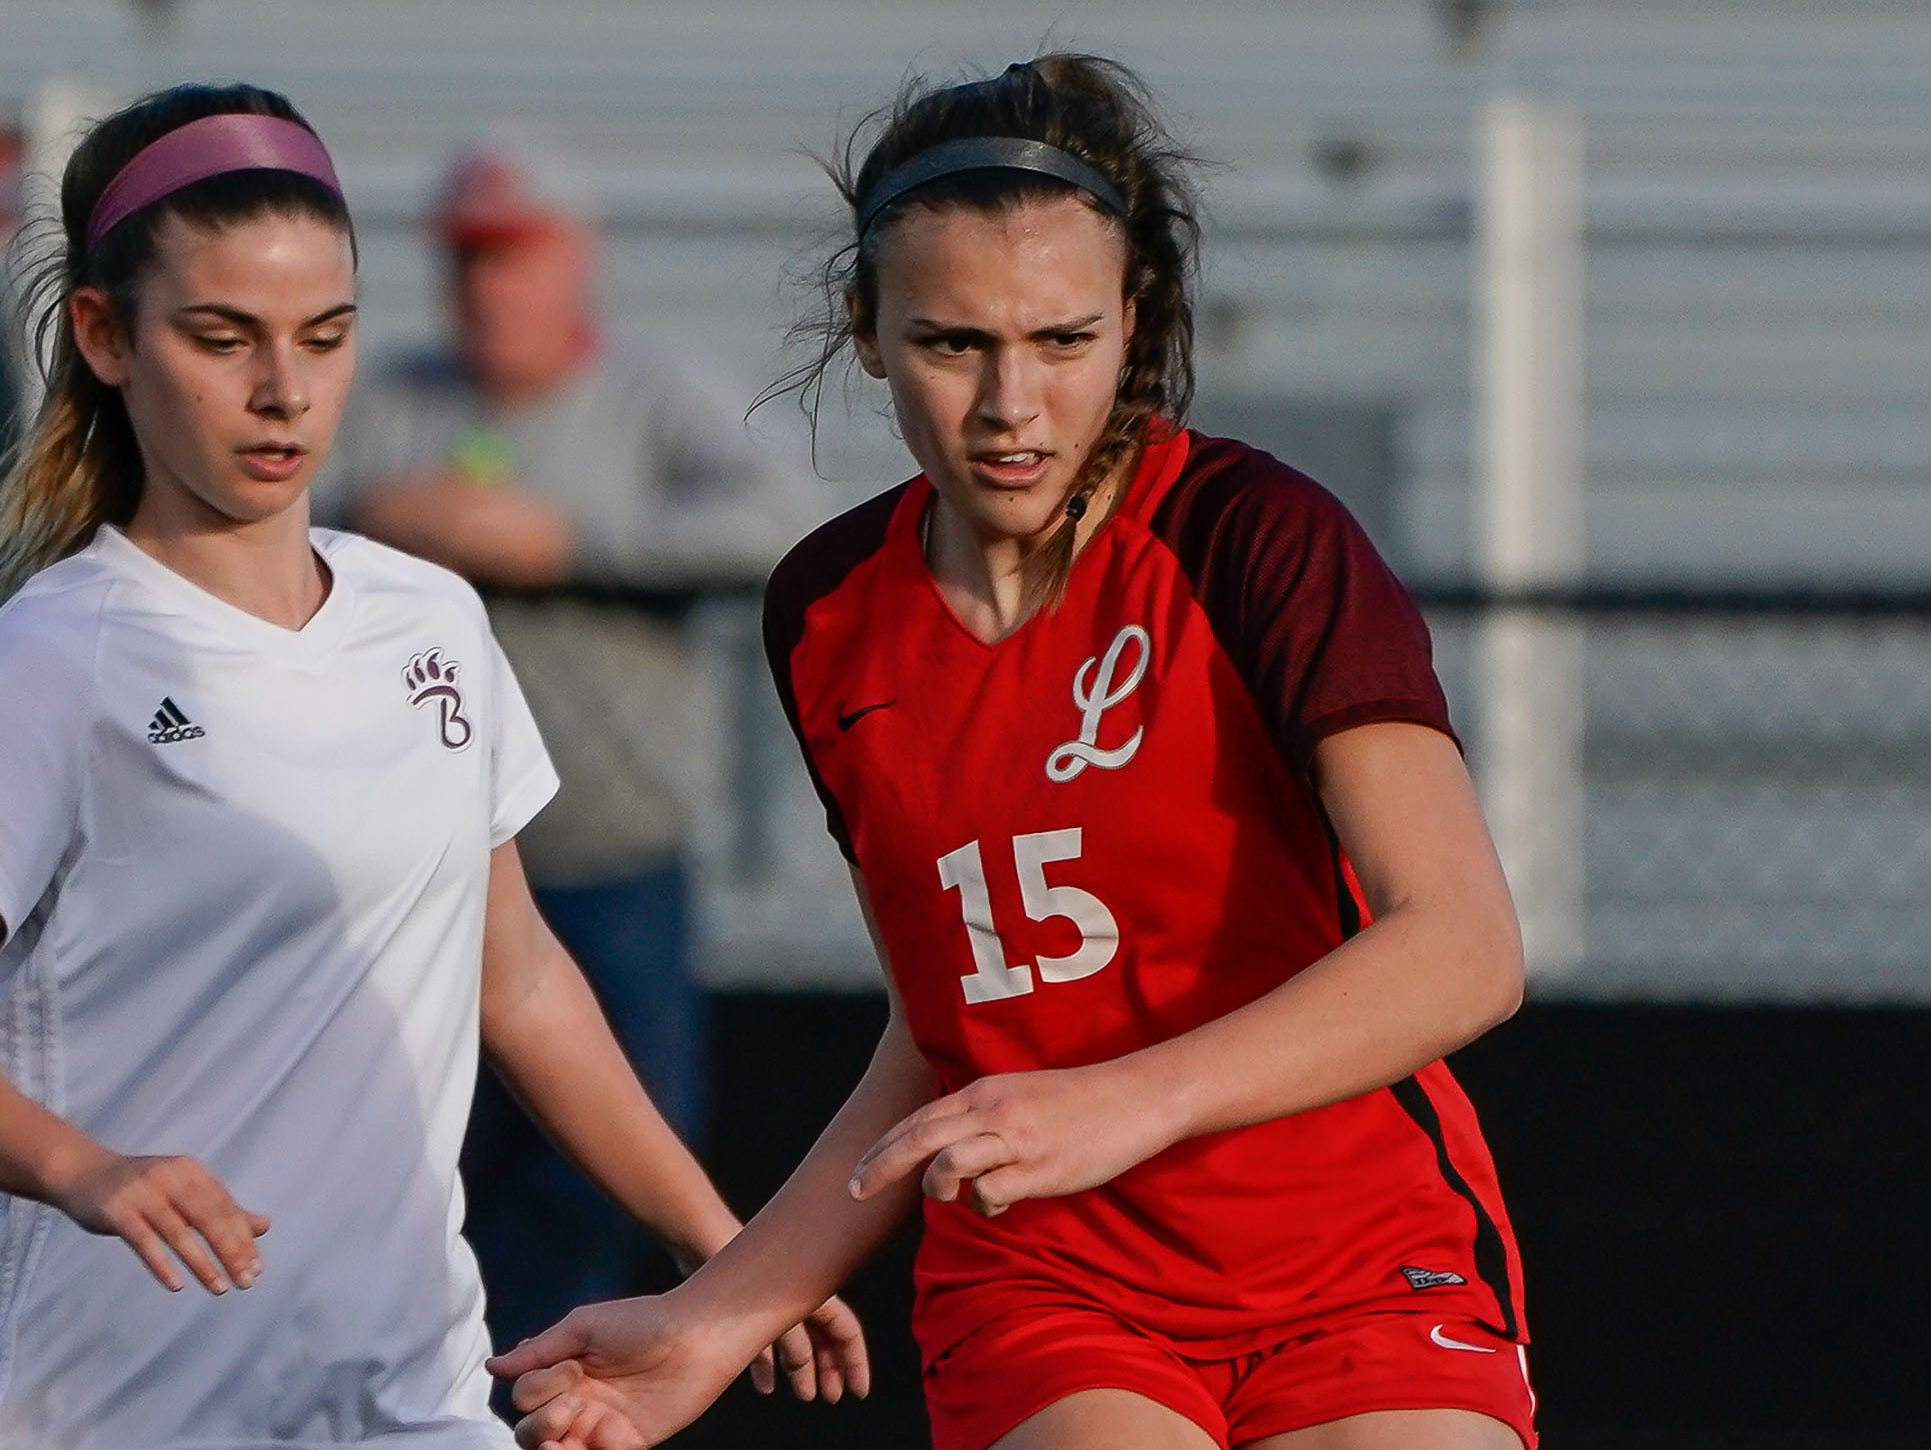 Lafayette's Hudson Lindsay (15) kicks a ball against Long Beach during the MHSAA 5A Girls Soccer Championships held at Brandon High School in Brandon, MS, Saturday February 9, 2019.(Bob Smith-For The Clarion Ledger)